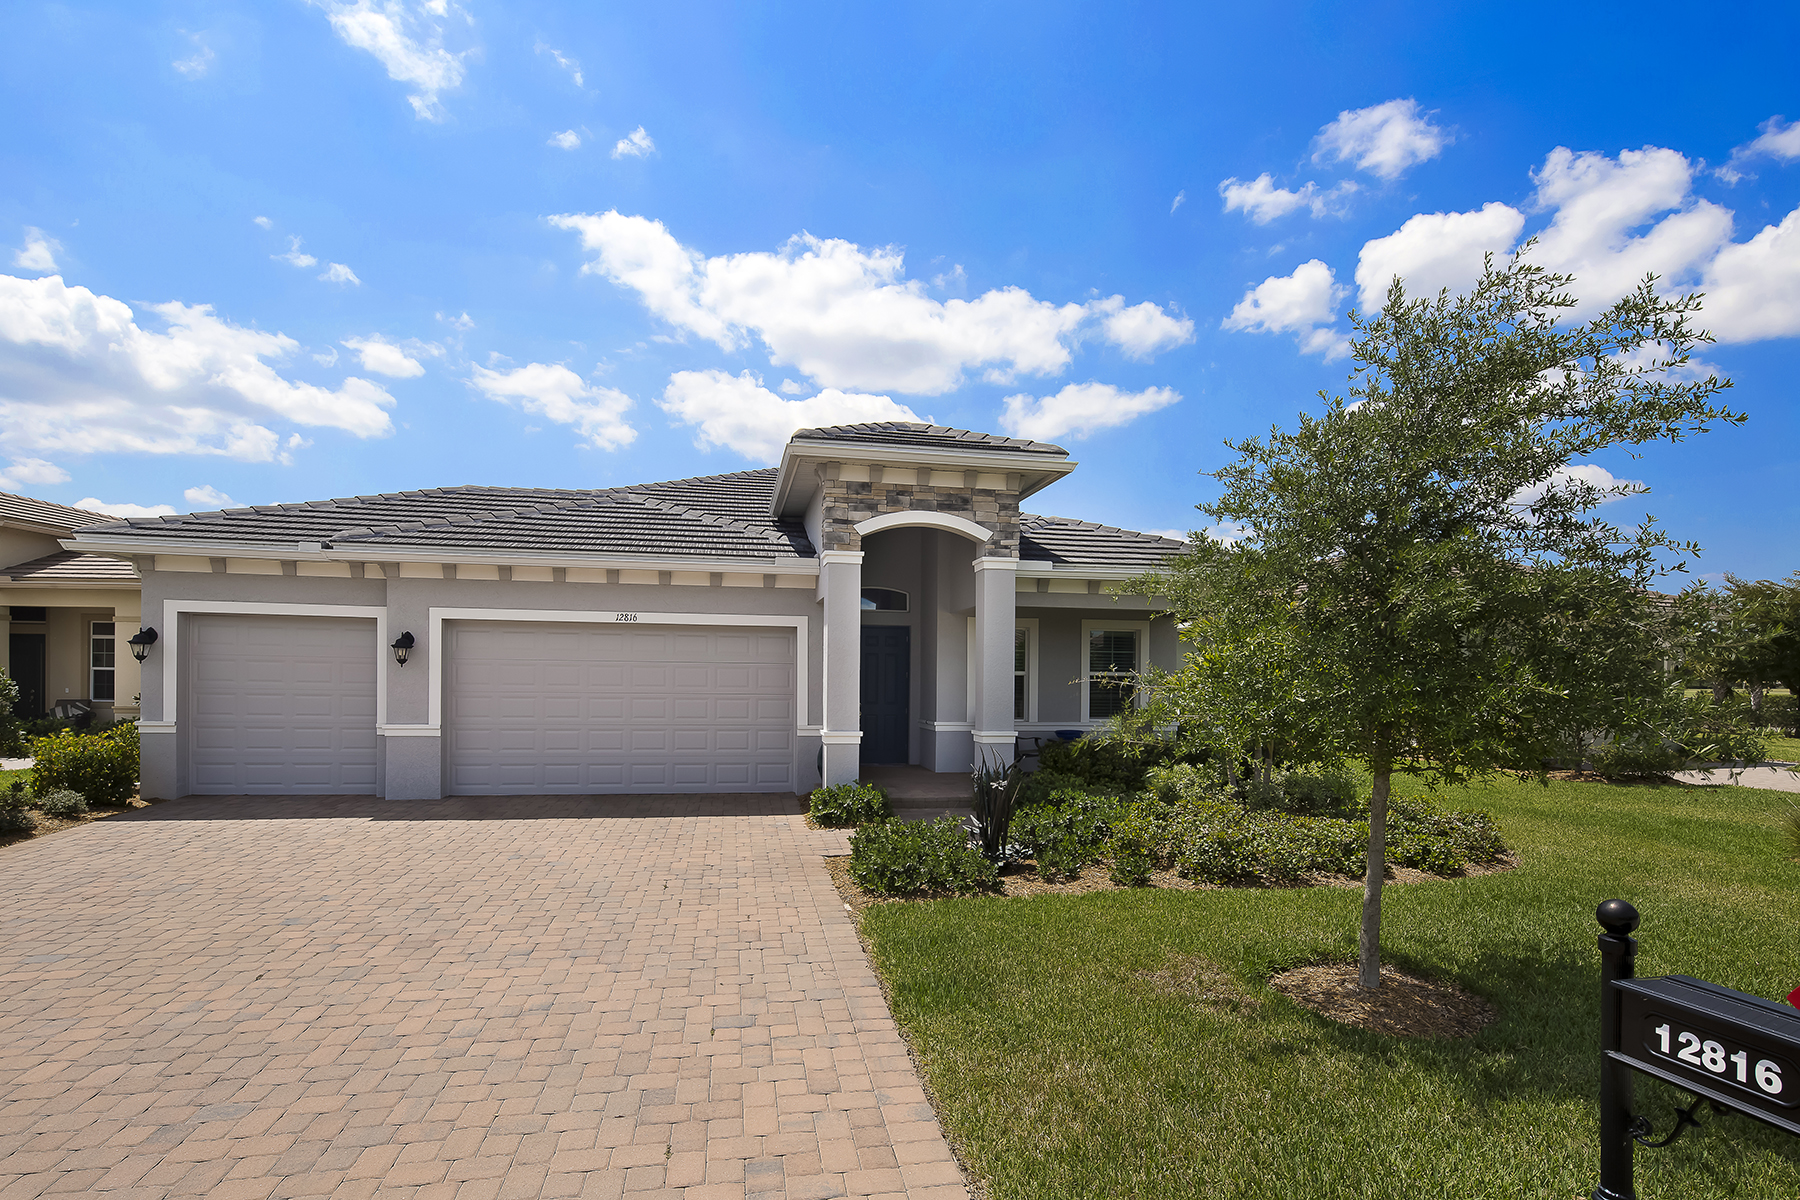 Additional photo for property listing at VERANDAH - FAIRWAY COVE 12816  Fairway Cove Ct,  Fort Myers, Florida 33905 United States